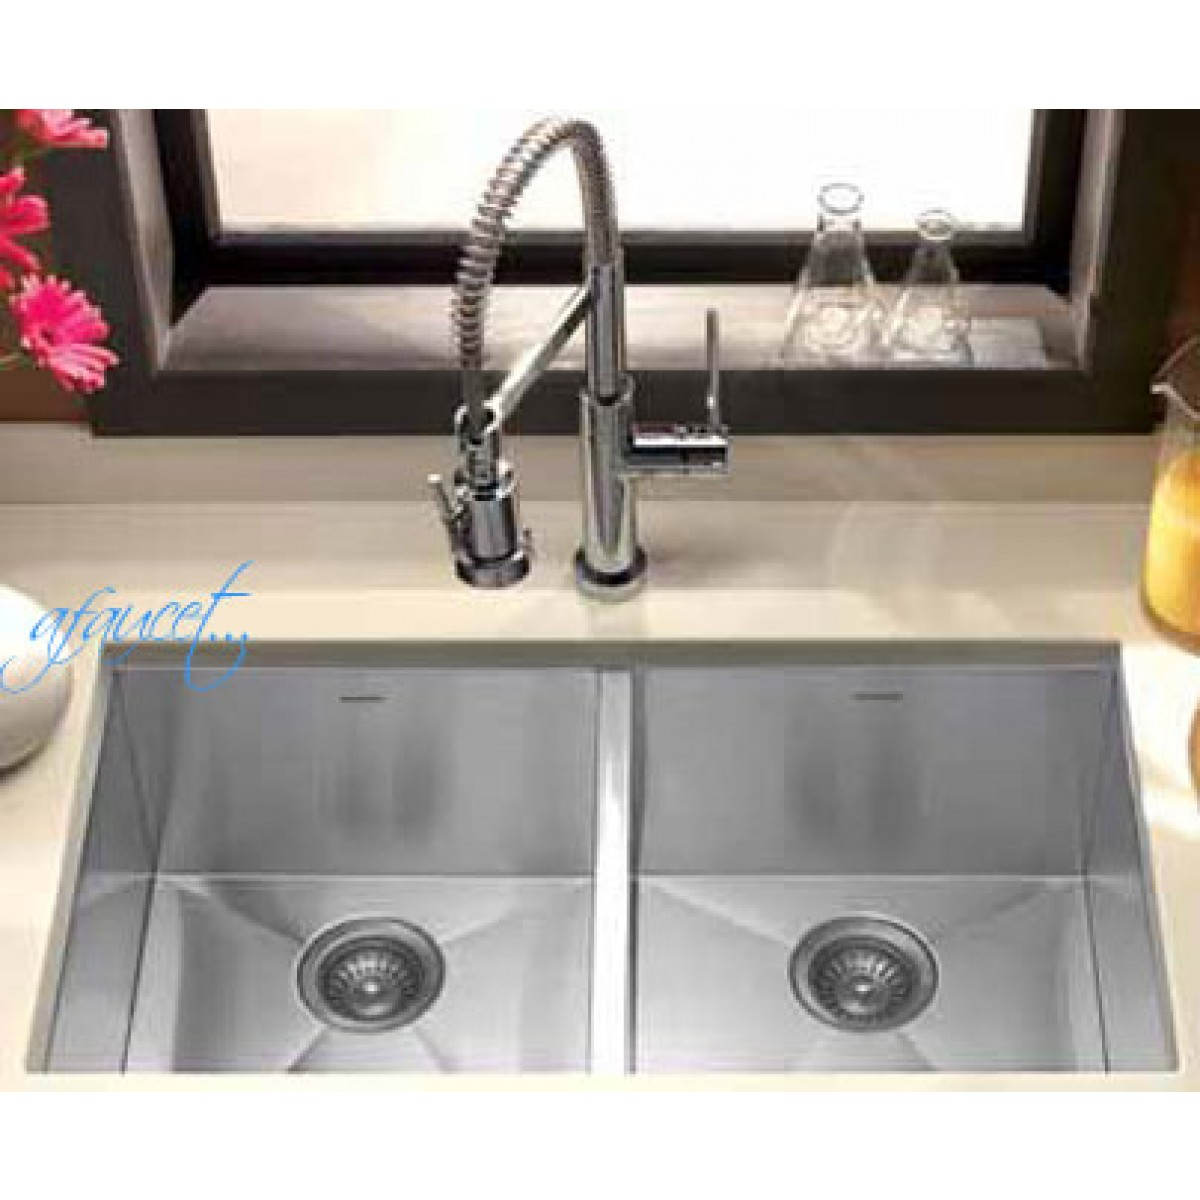 29 inch stainless steel undermount 50 50 double bowl kitchen sink zero radius design - Designer sinks ...